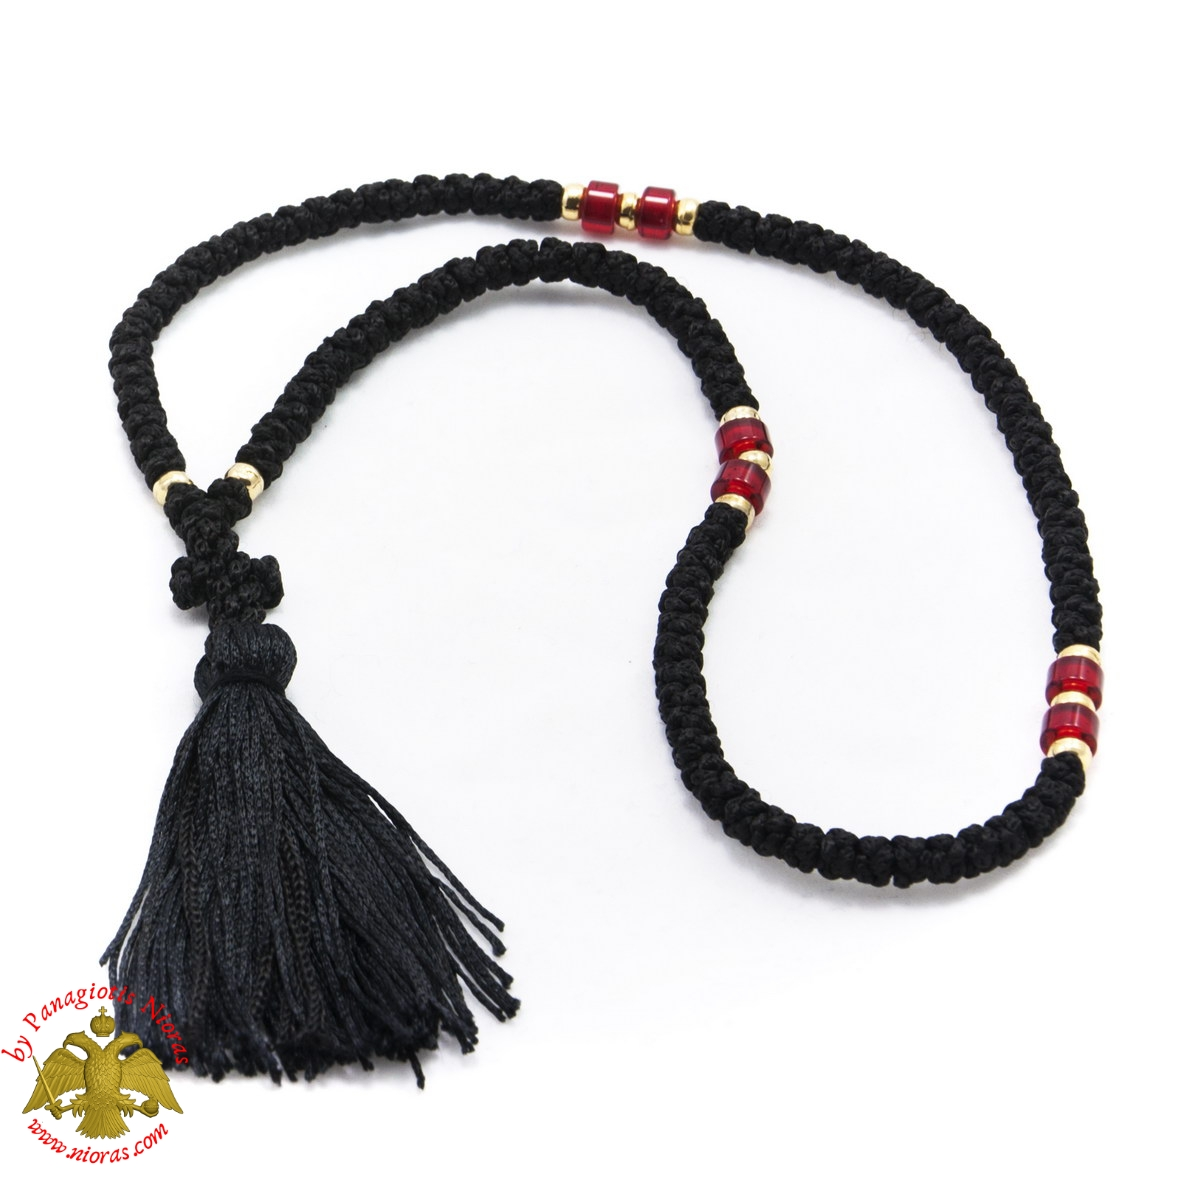 Orthodox Chrisitan Black Prayer Rope 100 knots with Red Beads